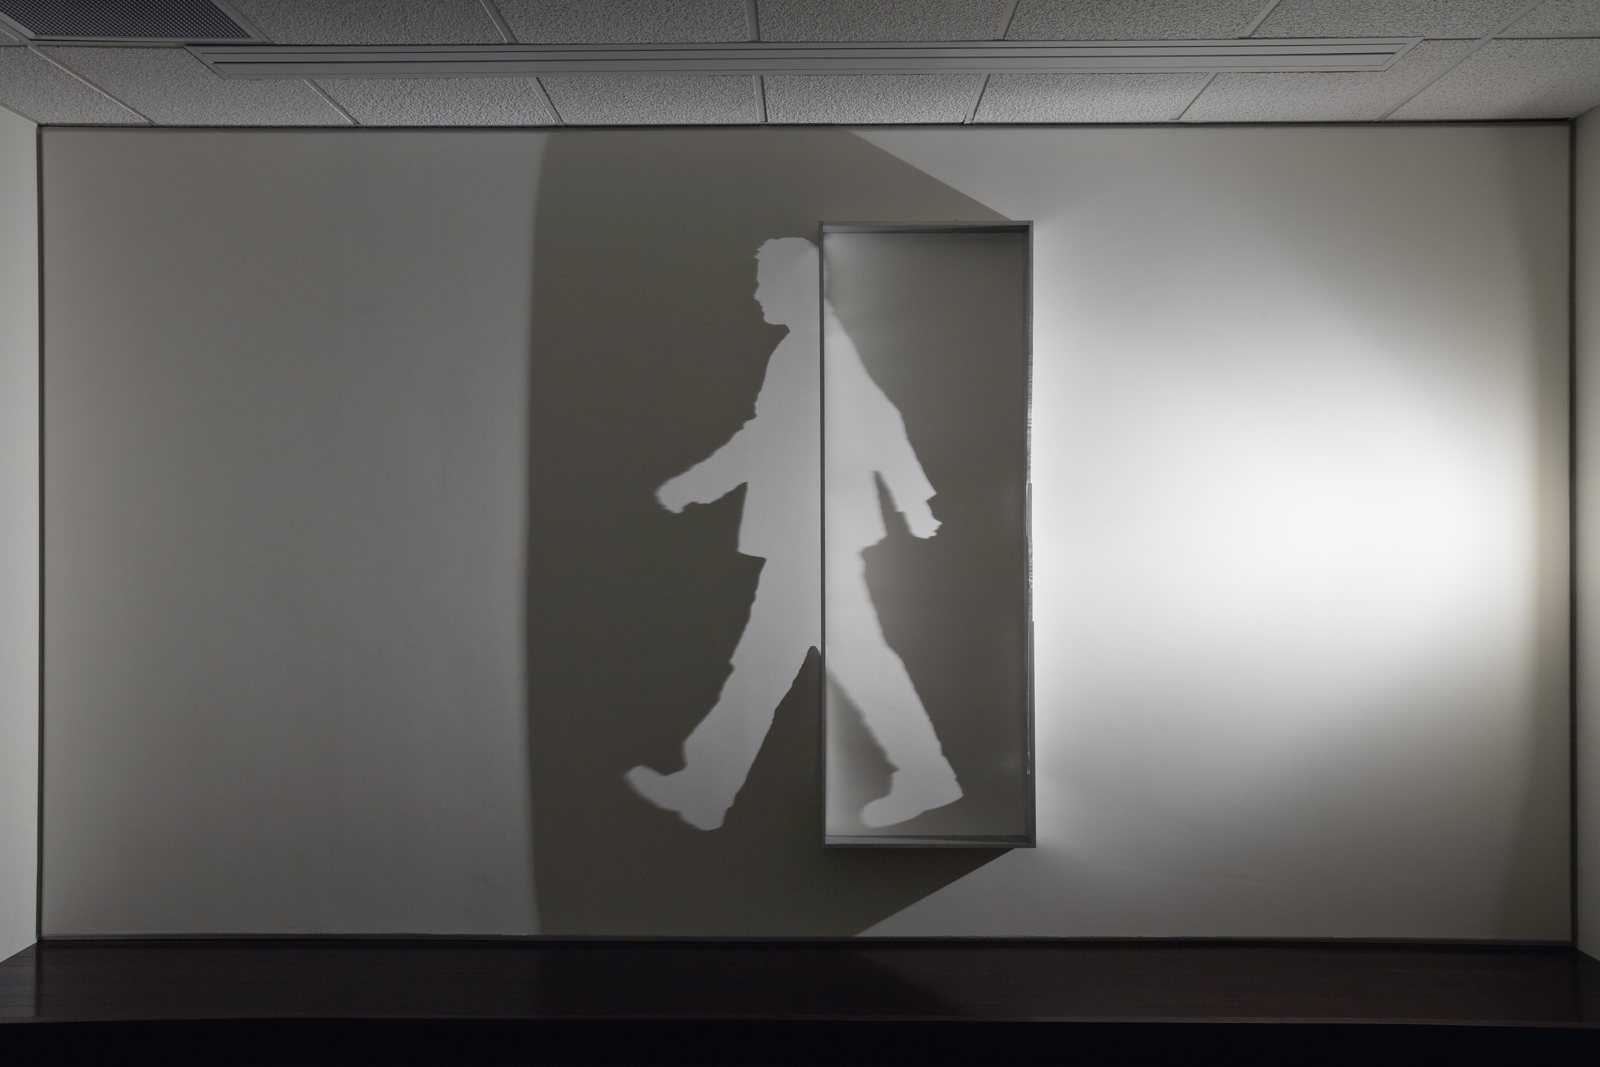 PATHWAY    2008 H183, W150, D10 cm Aluminum with cut-outs, single light source, shadow Permanent Collection Seattle City Light, Washington, USA